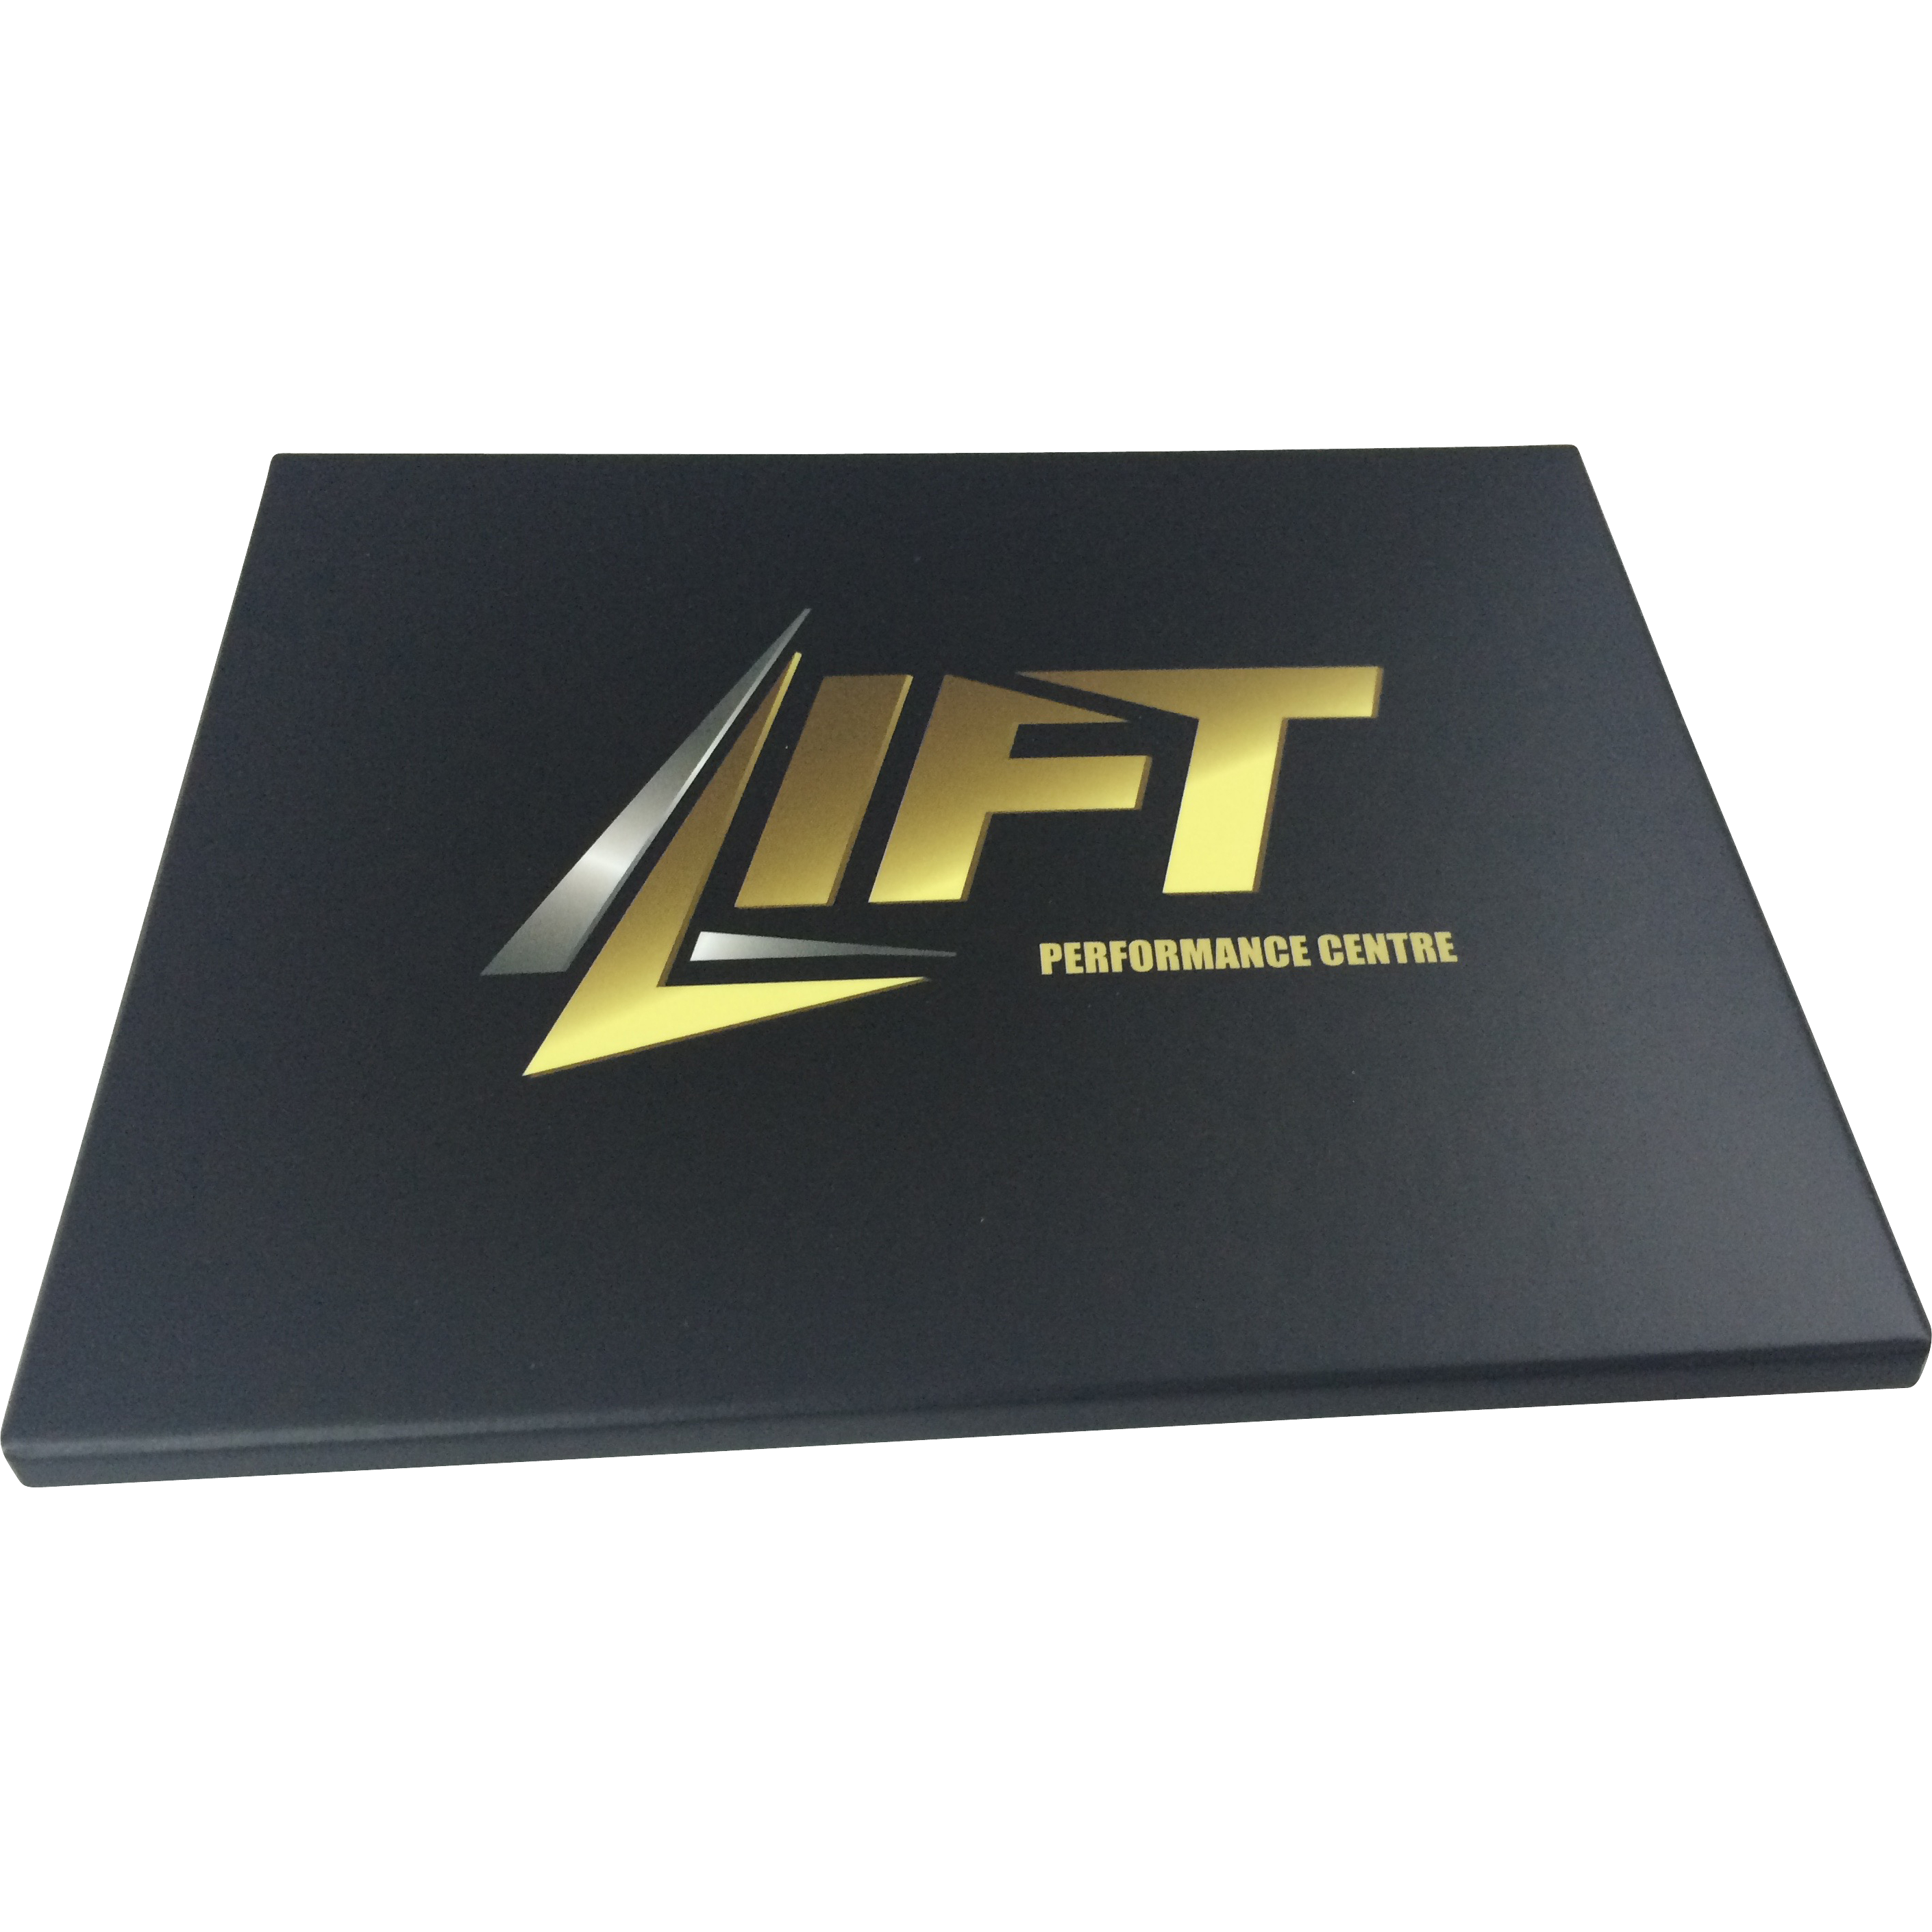 Voucher gift box. Flat pack box with company branding